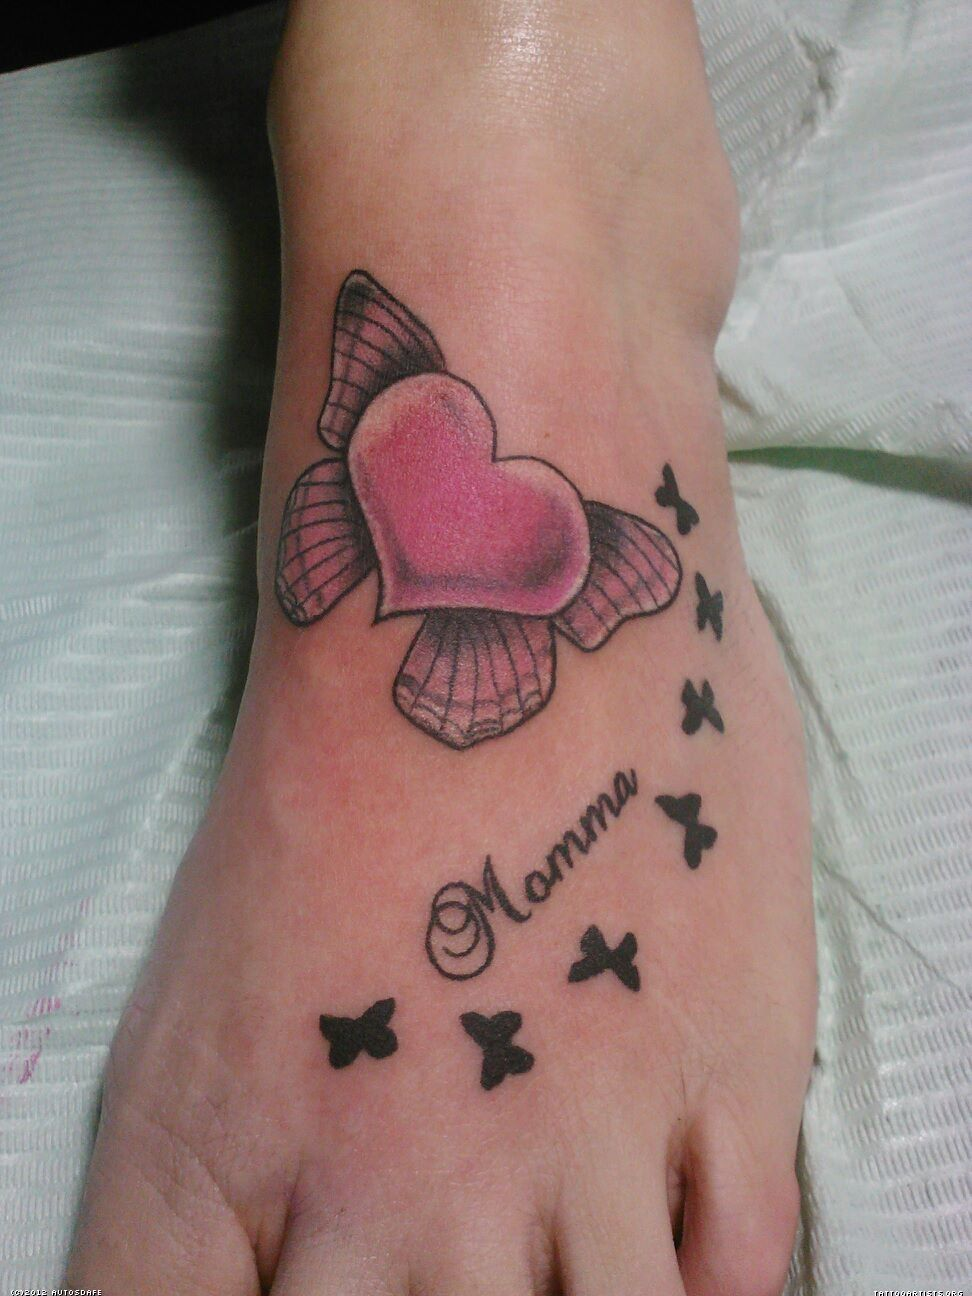 Mom Heart Tattoos Unique Tattoo Pictures Designs And - Cute heart butterfly memorial foot tattoo for mom